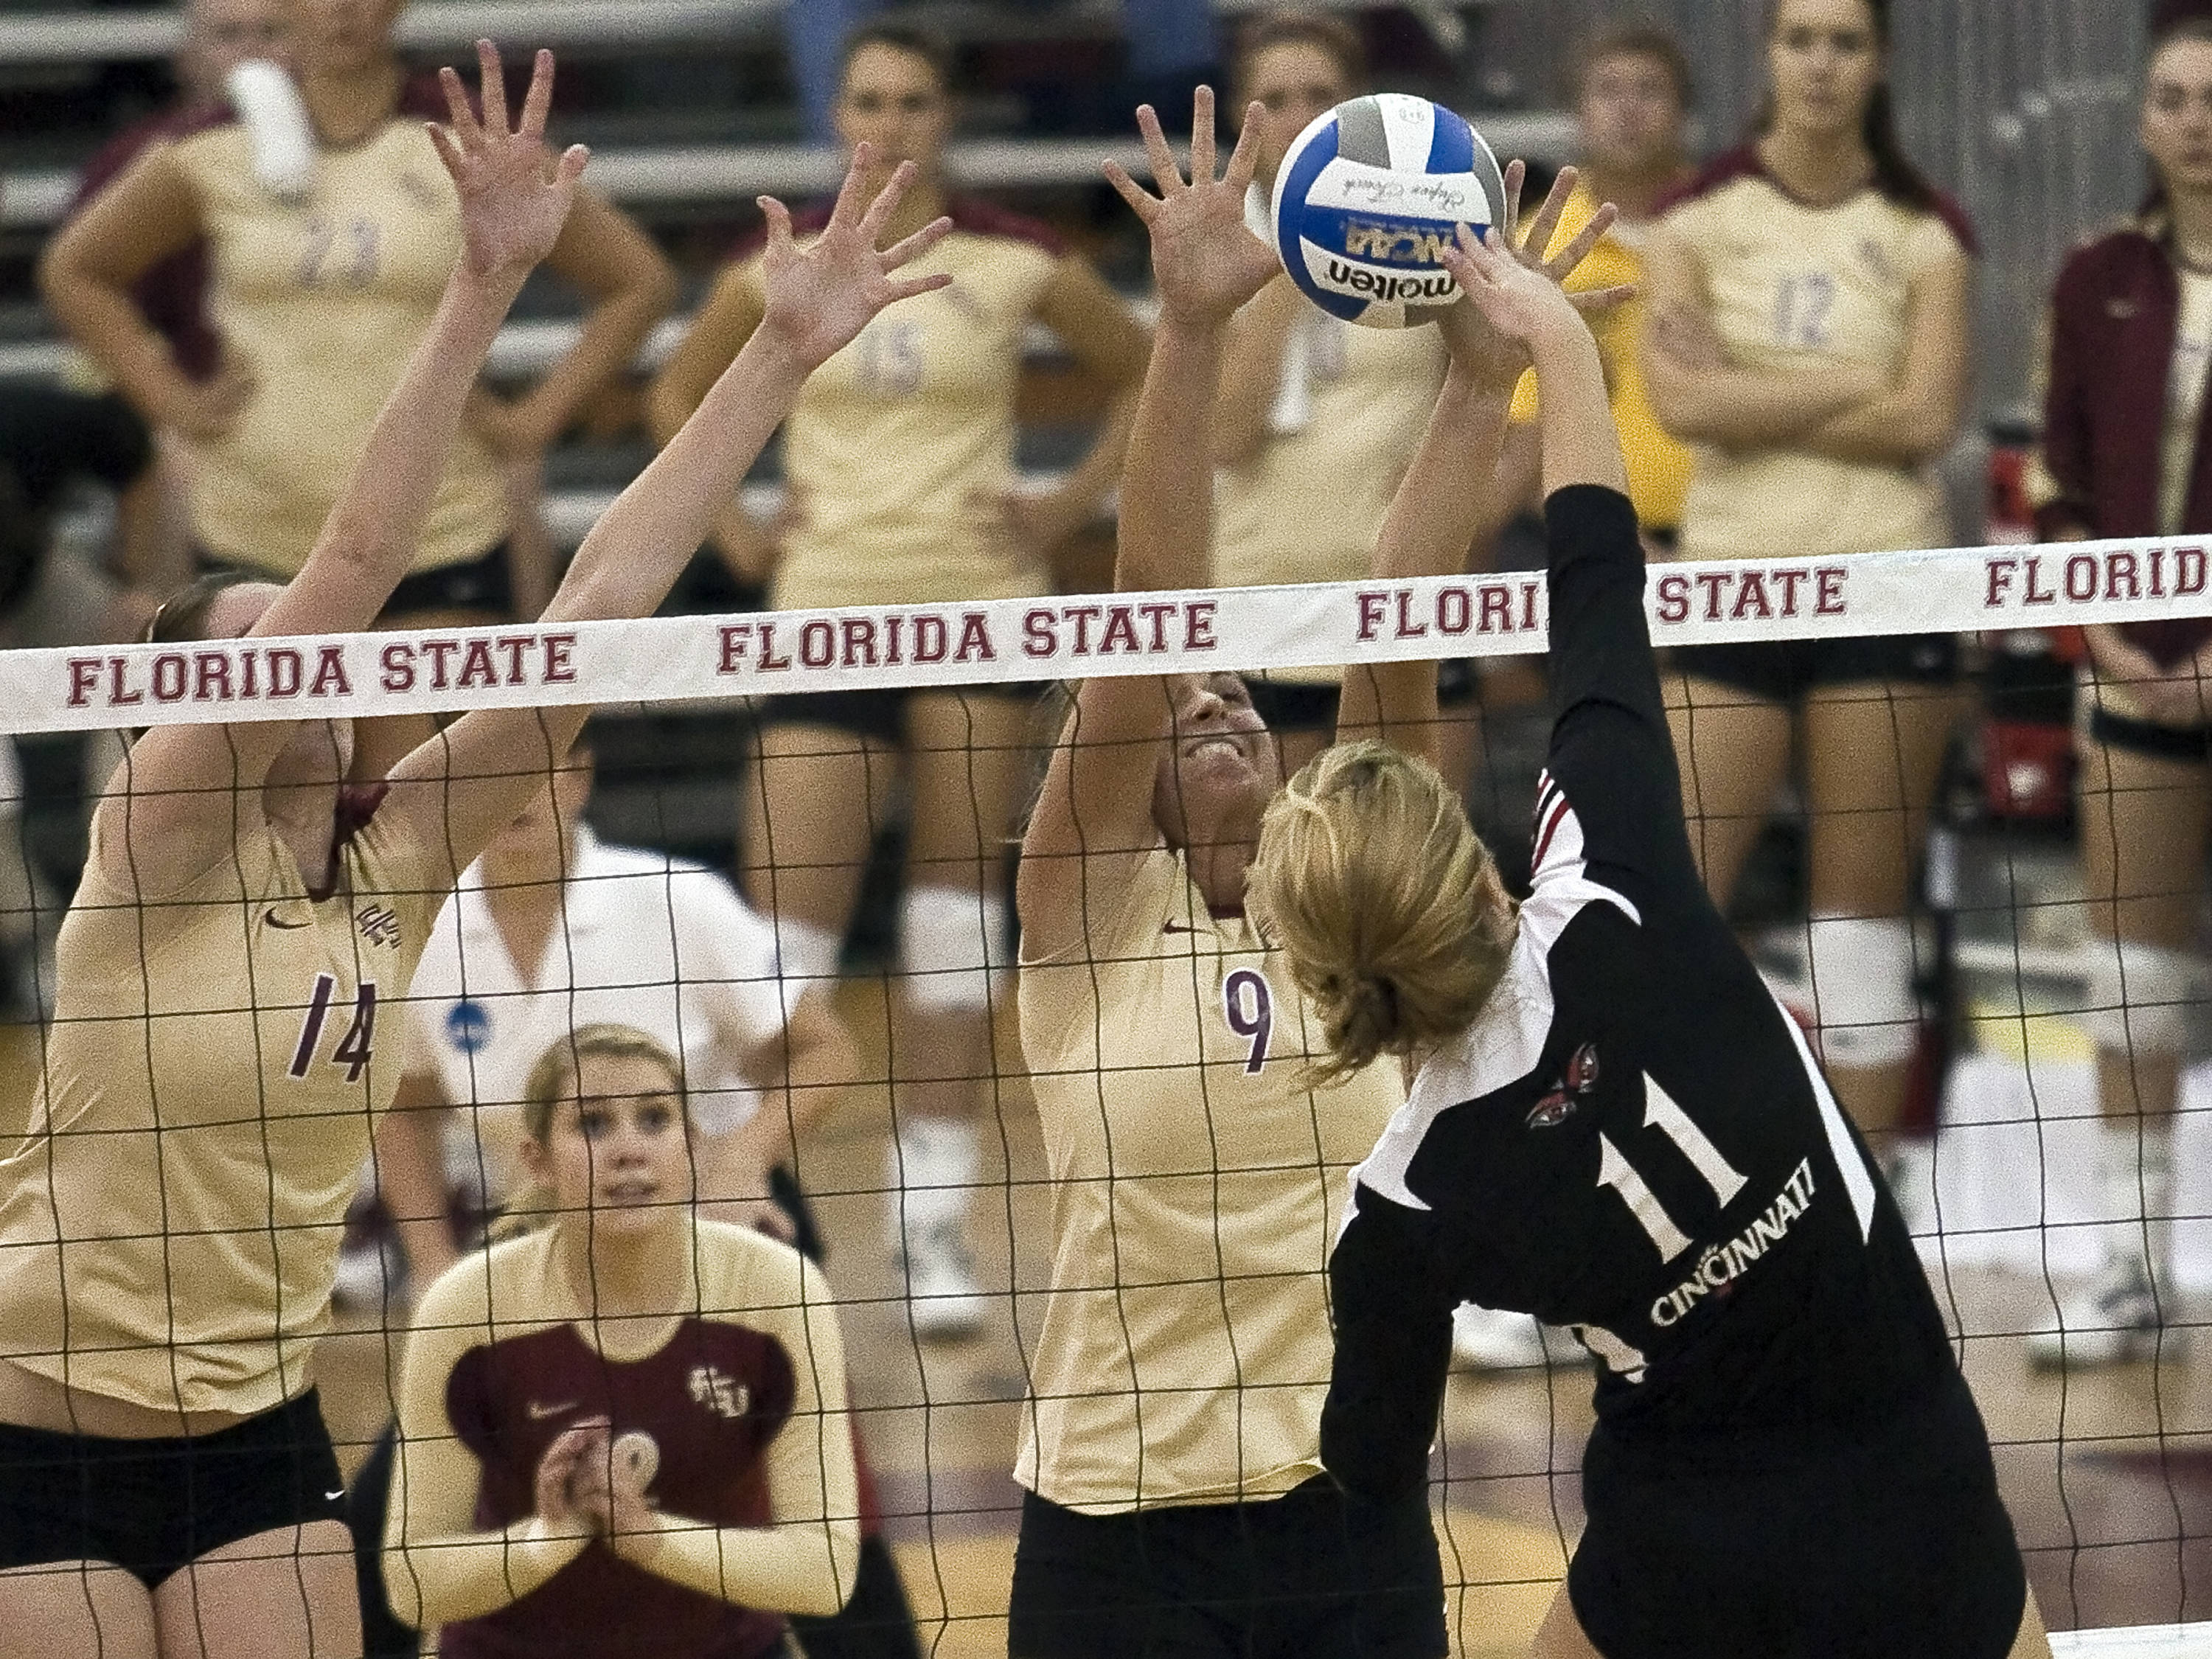 Visnja Djurdjevic (9), Ashley Neff (14), FSU vs Cincinnati, 12/03/2011